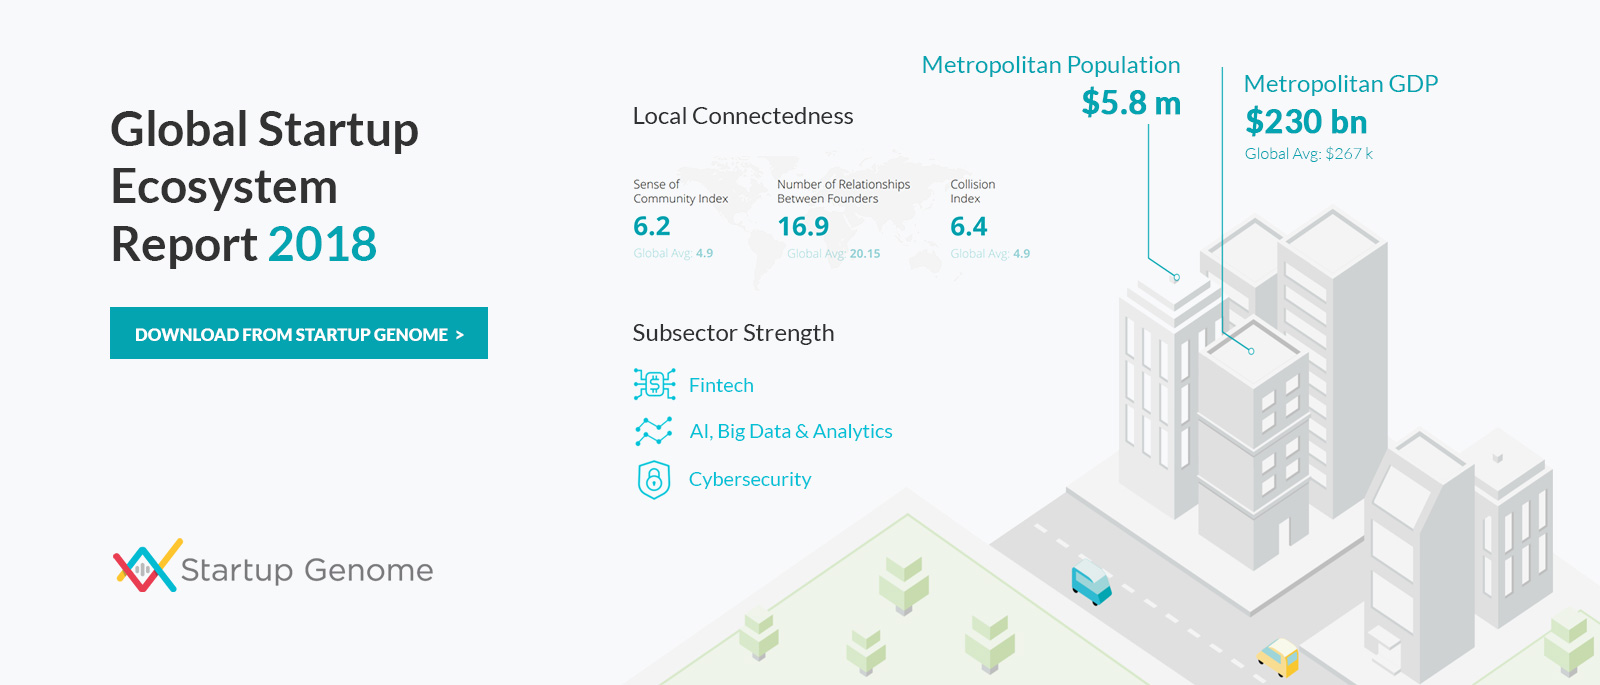 Global Startup Ecosystem 2018 - Report